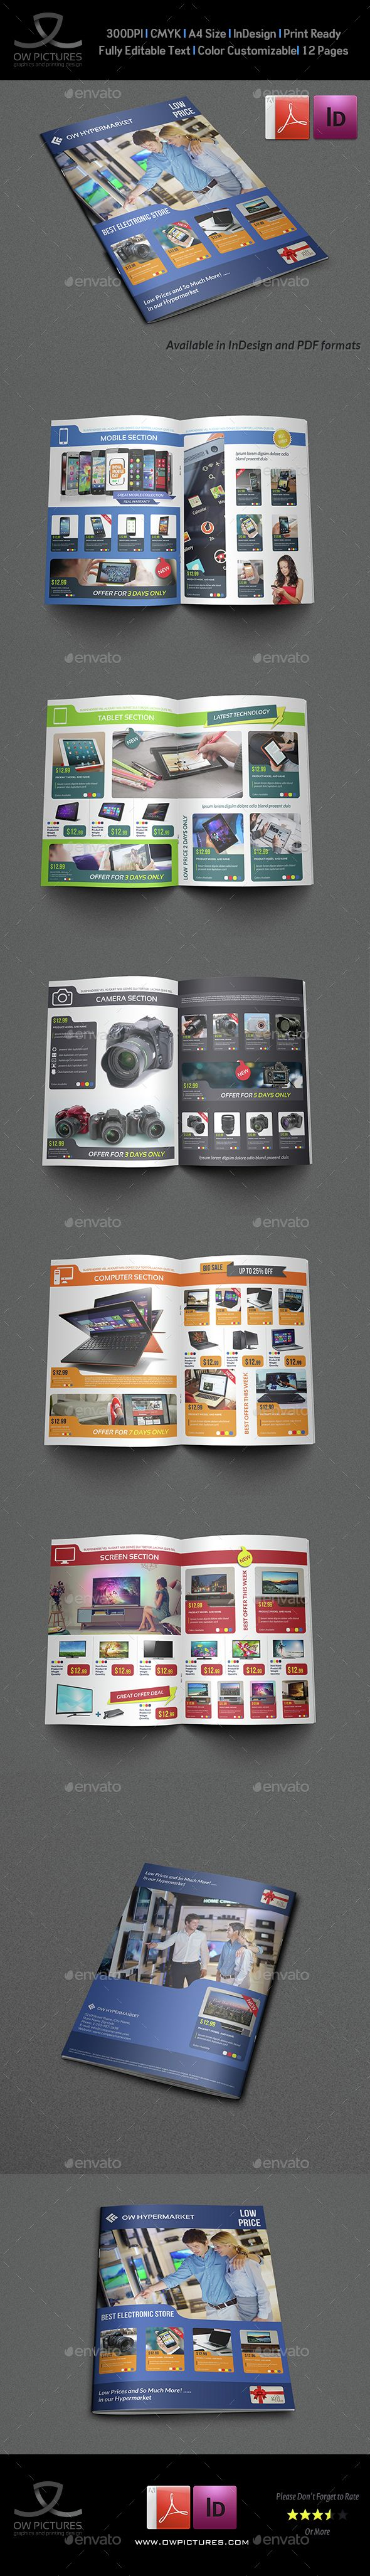 Electronics Products Catalog Brochure - 12 Pages | Catálogo